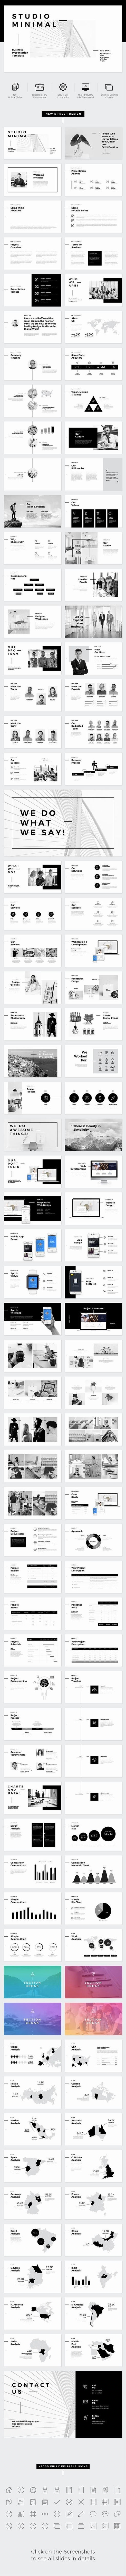 studio minimal presentation powerpoint template graphicriver